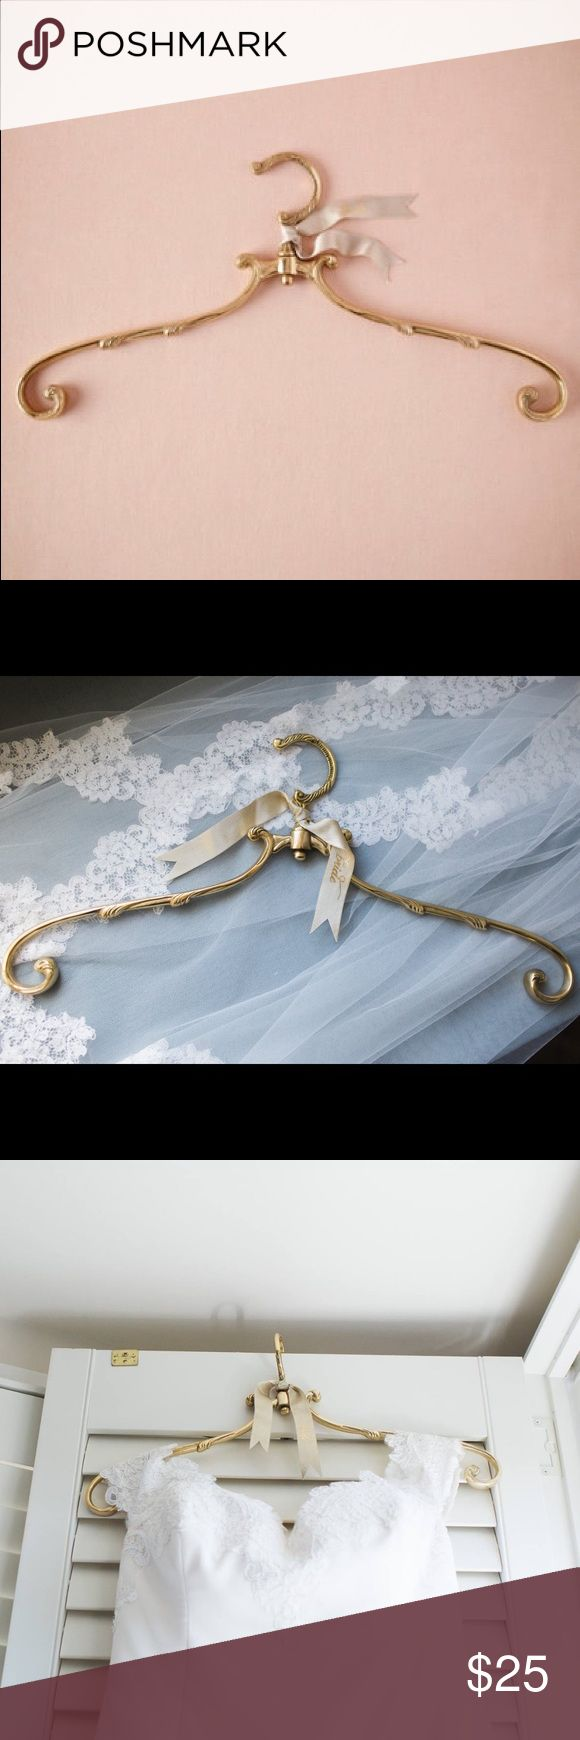 """BHLDN Wedding Dress """"French Market Hanger"""" GOLD Make your wedding photos picture-perfect with a beautiful bridal hanger for your dress! I used this briefly for photos with my wedding dress on my wedding day, but otherwise it's basically new! Retails for $35 with shipping on BHLDN's site. Save money! BHLDN Other"""